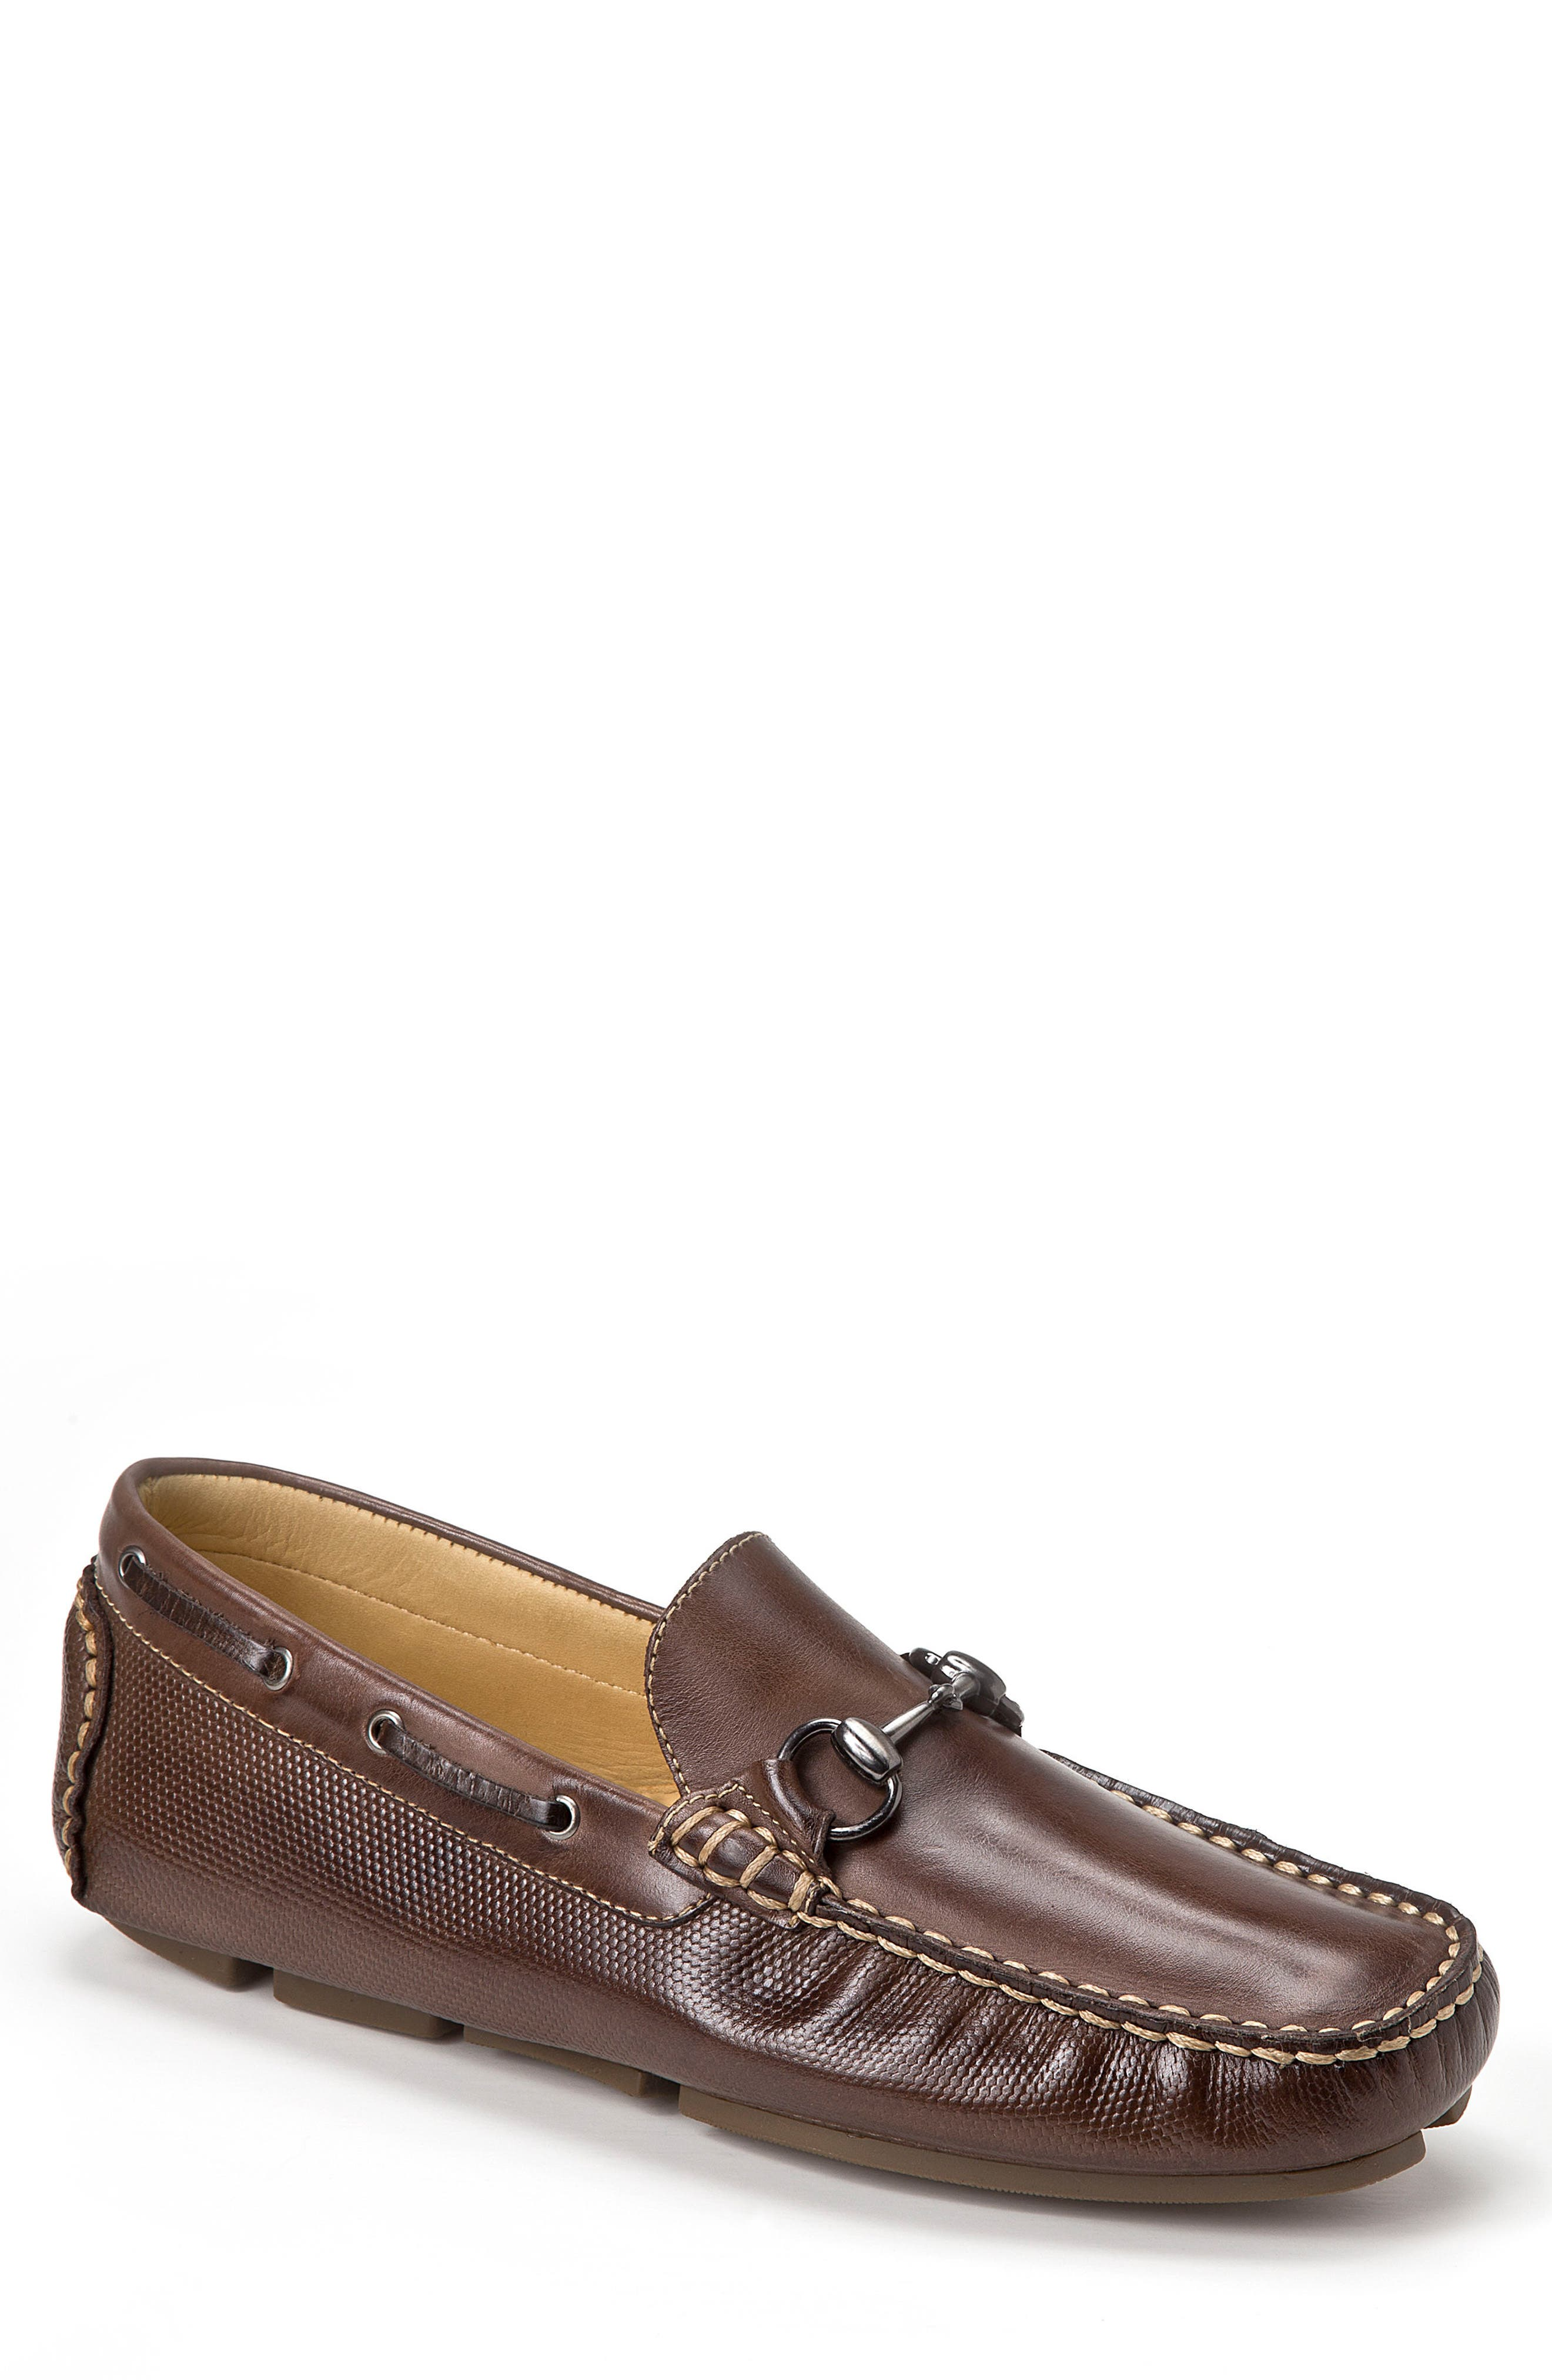 Neil Embossed Loafer,                         Main,                         color, BROWN LEATHER